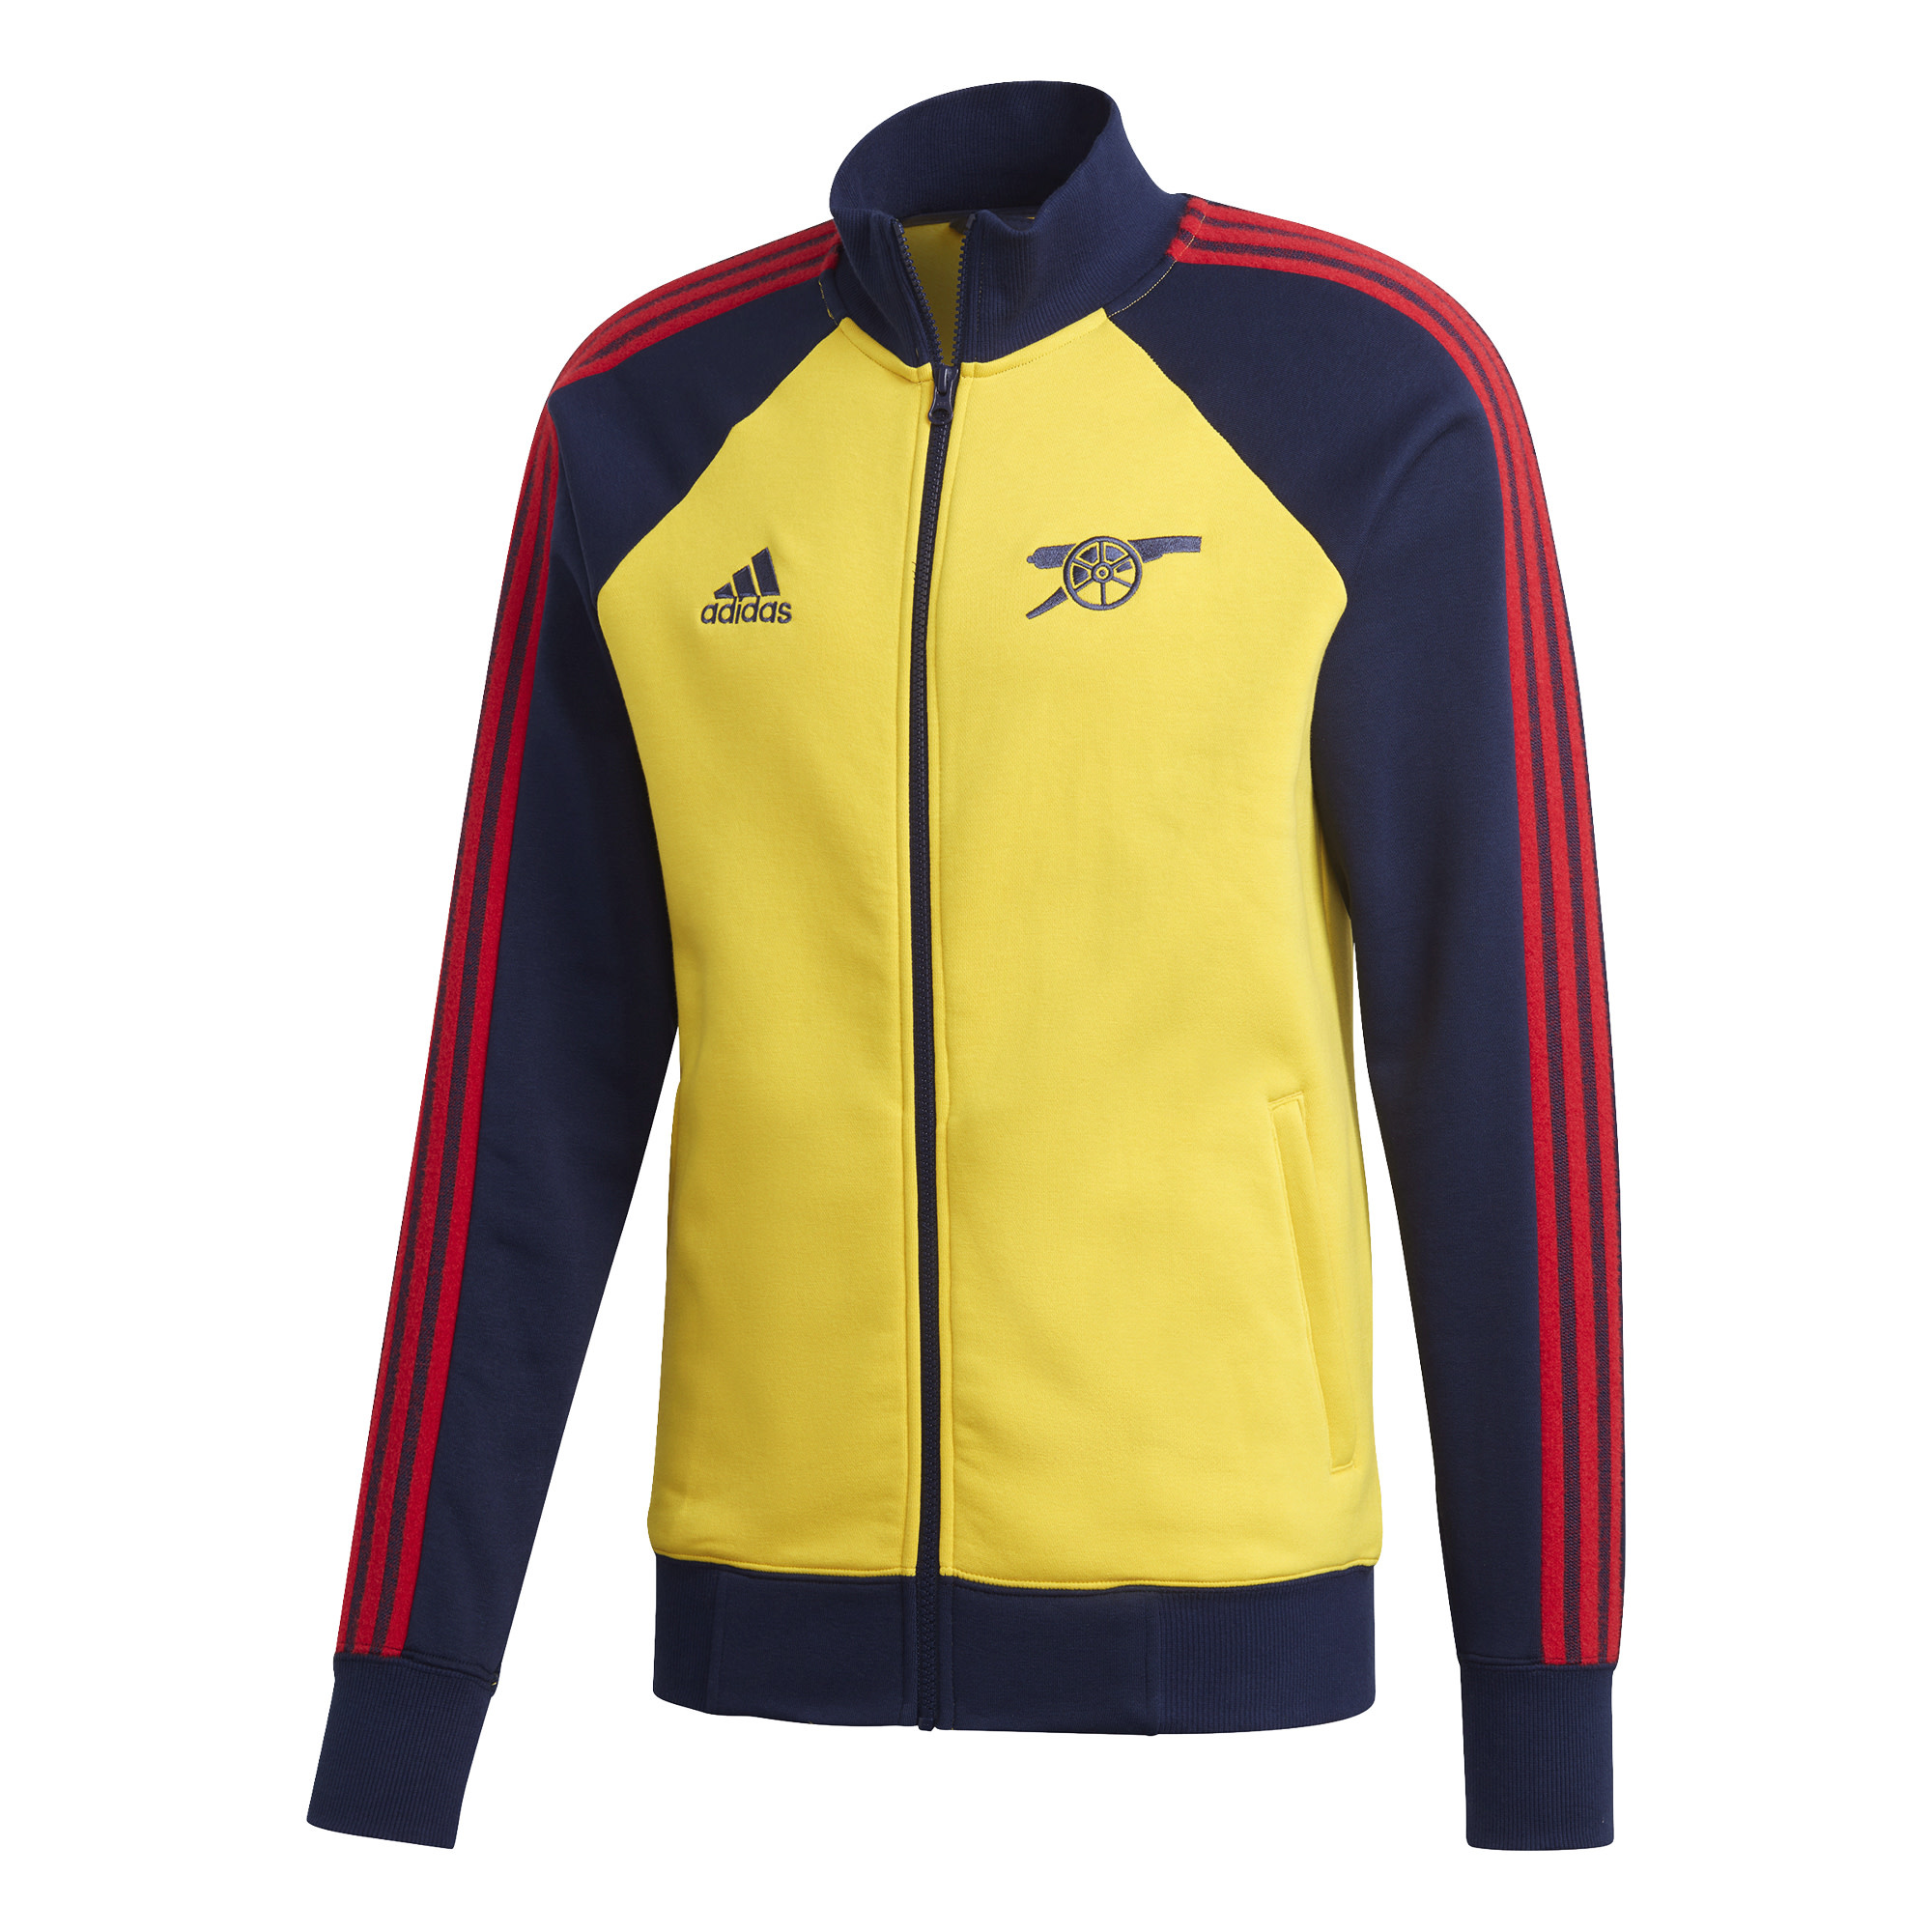 Adidas ADIDAS Arsenal Icons Jacket